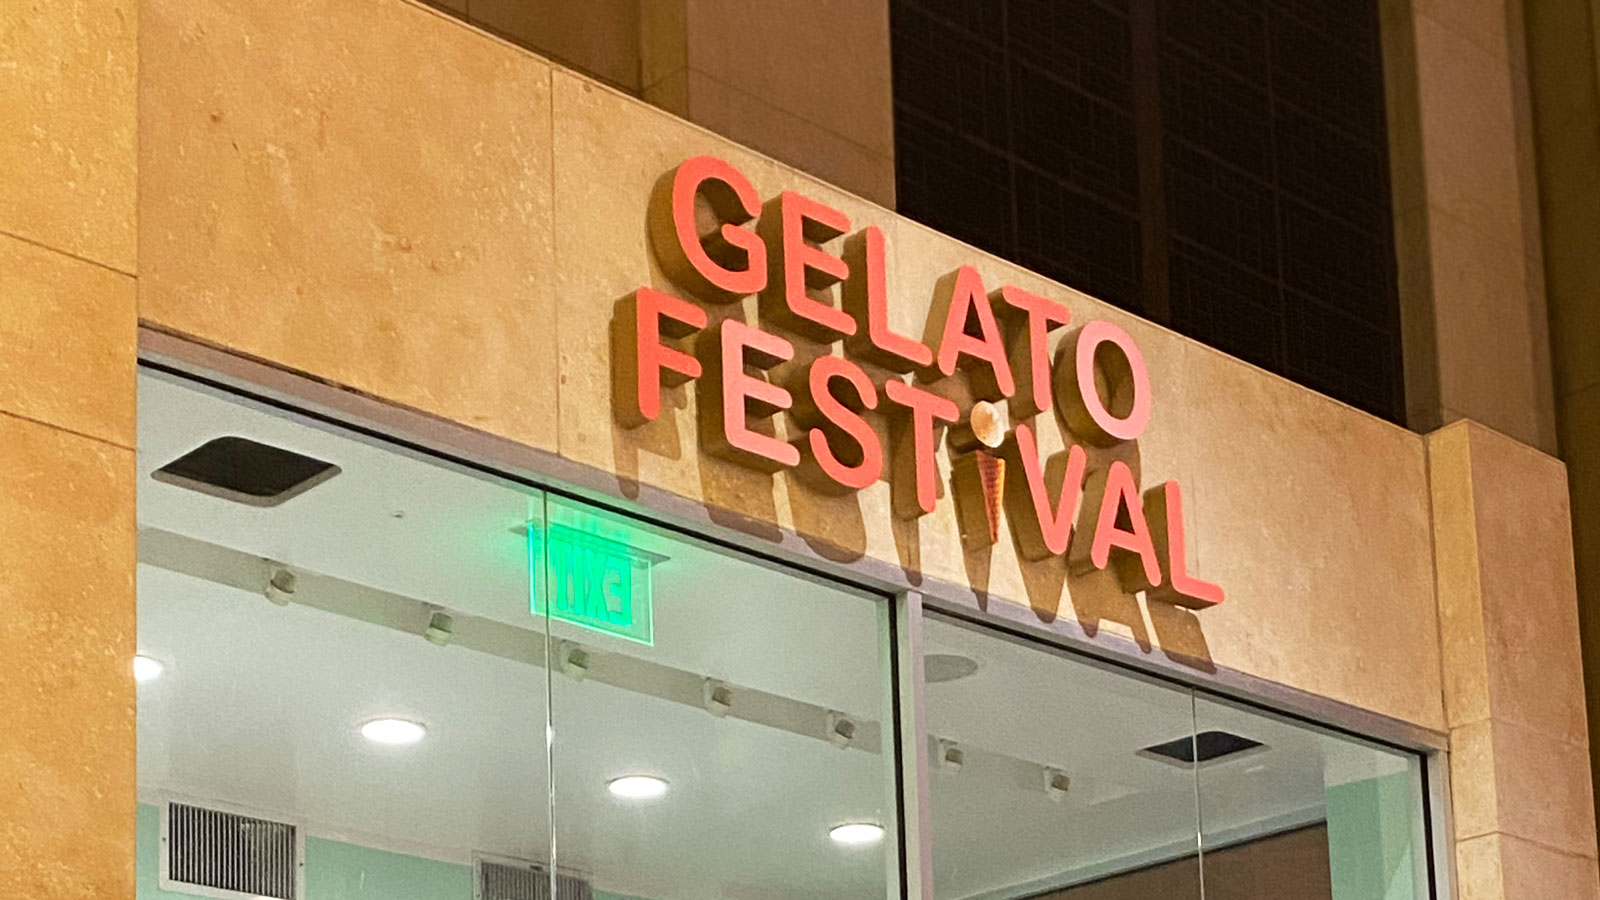 Gelato Festival storefront channel letters